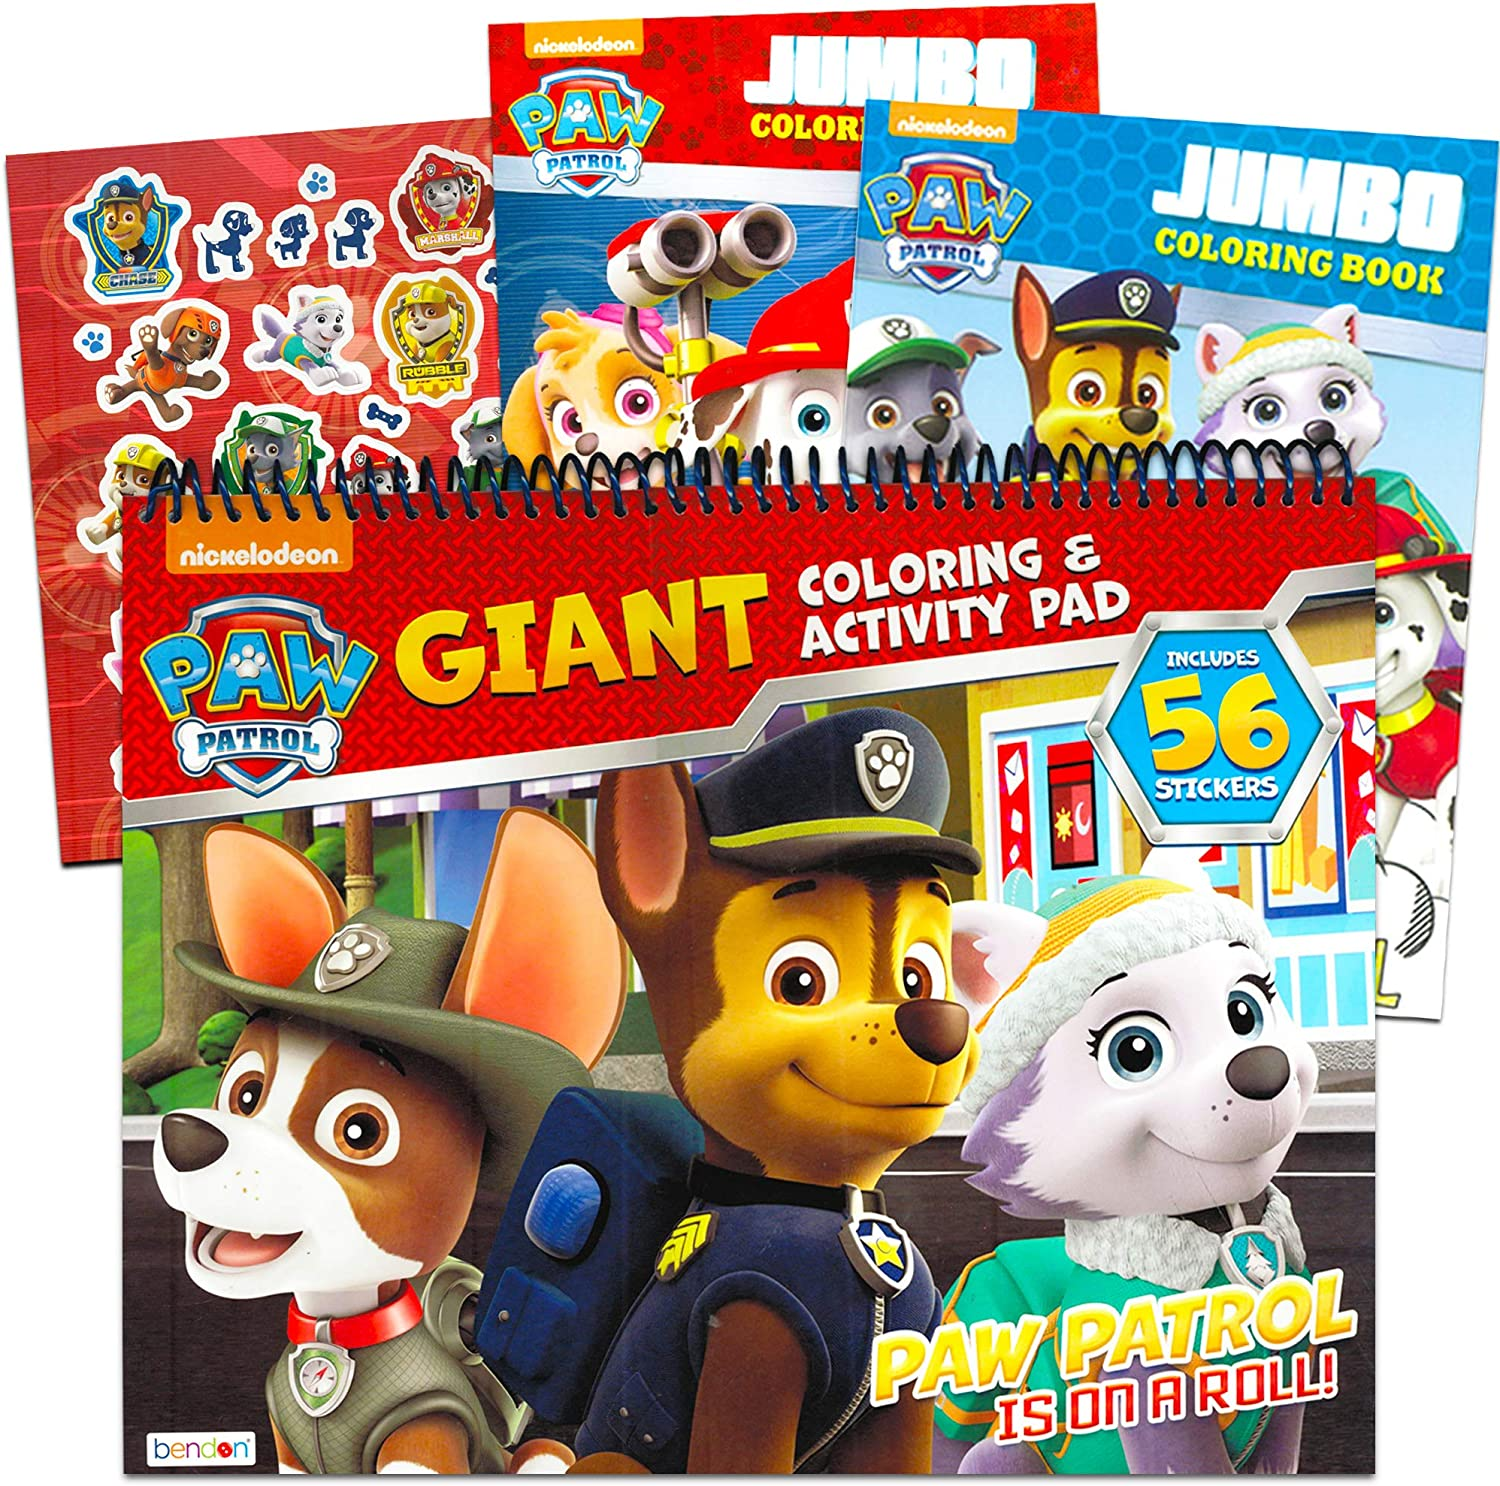 Paw Patrol Coloring And Activity Book Set 3 Coloring Books With Bonus Stickers